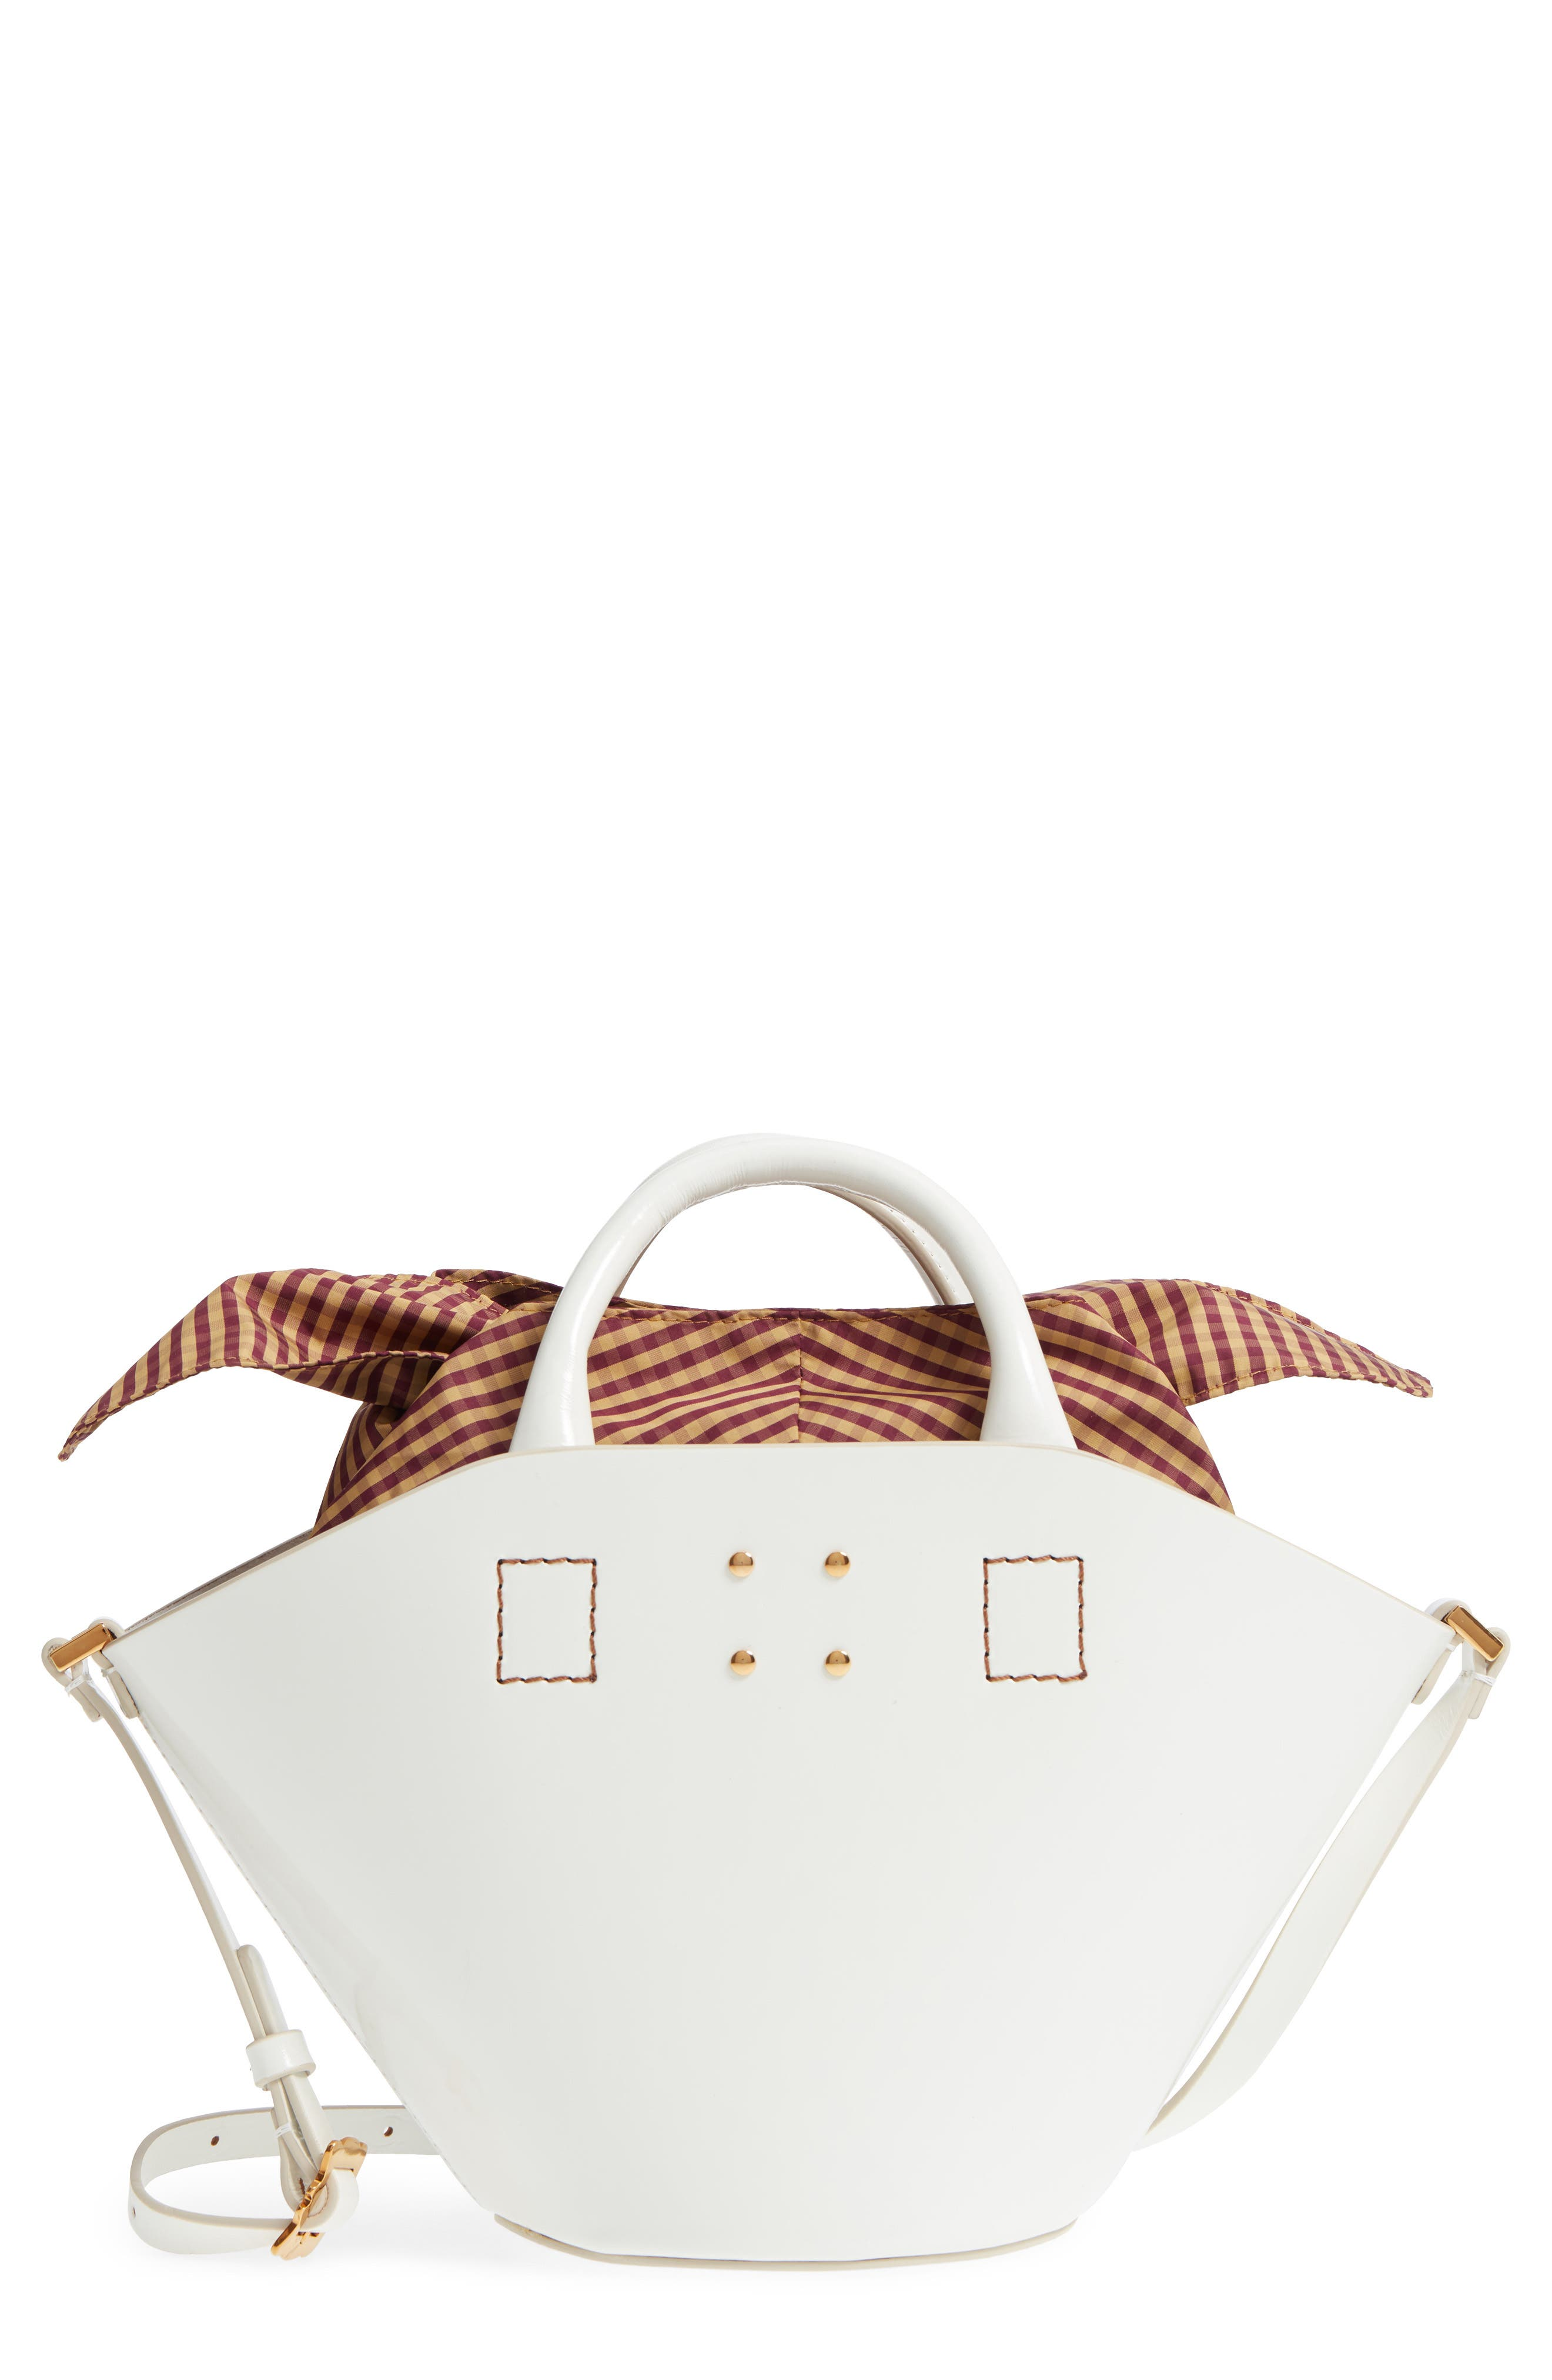 Small Leather Bucket Bag,                         Main,                         color, White